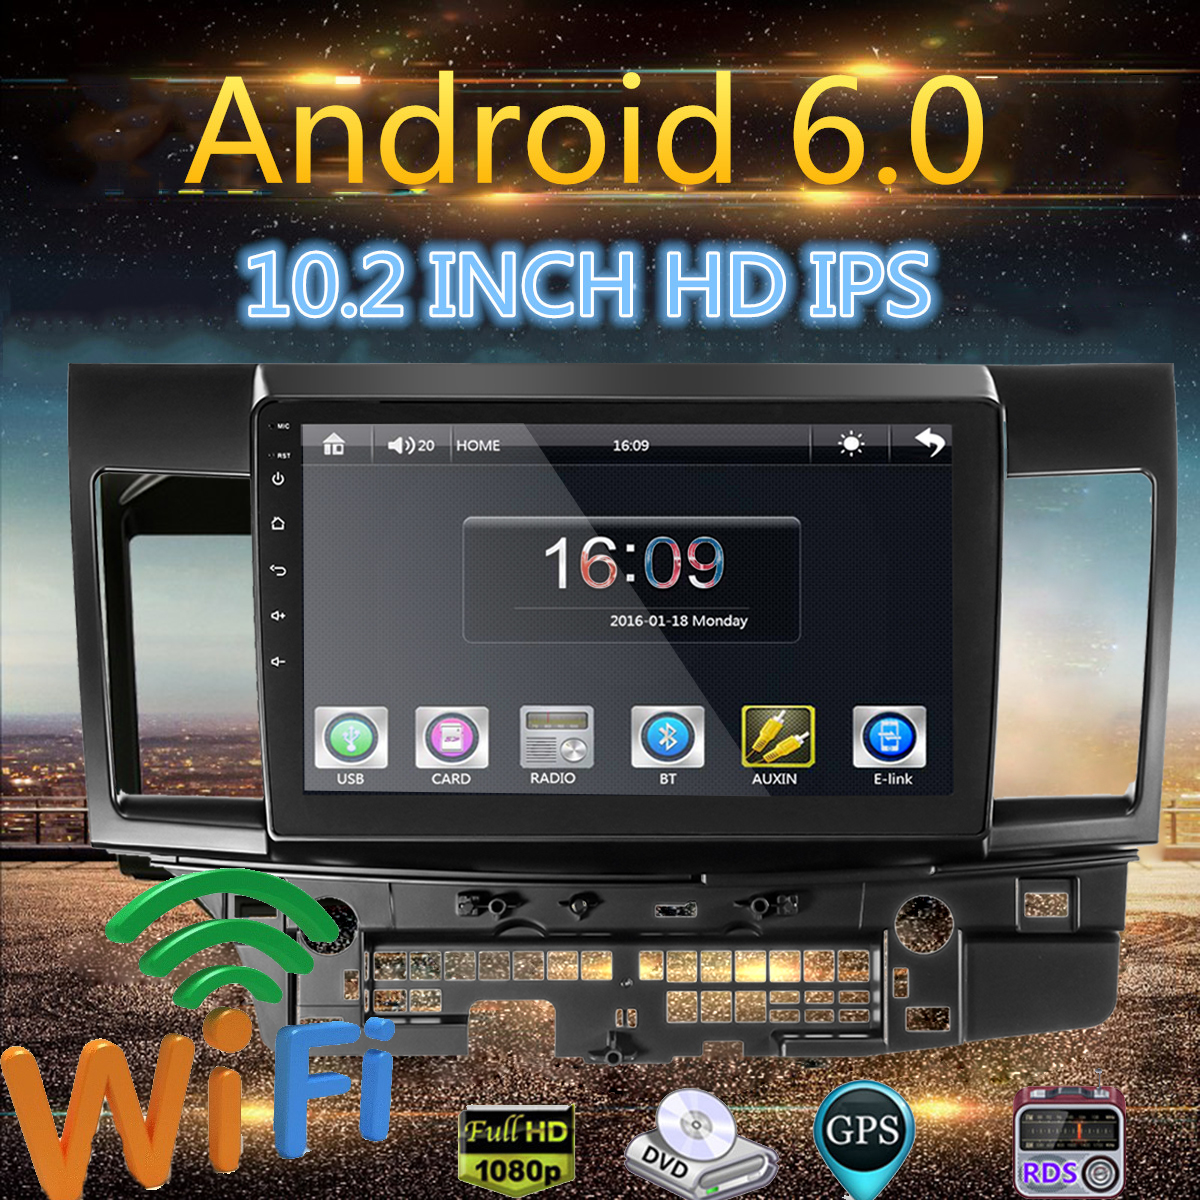 10.2 Inch for Android 6.0 Car GPS MP5 MP3 Two strand Car Media Player Stereo Navigation Radio Player For Mitsubishi for Lancer